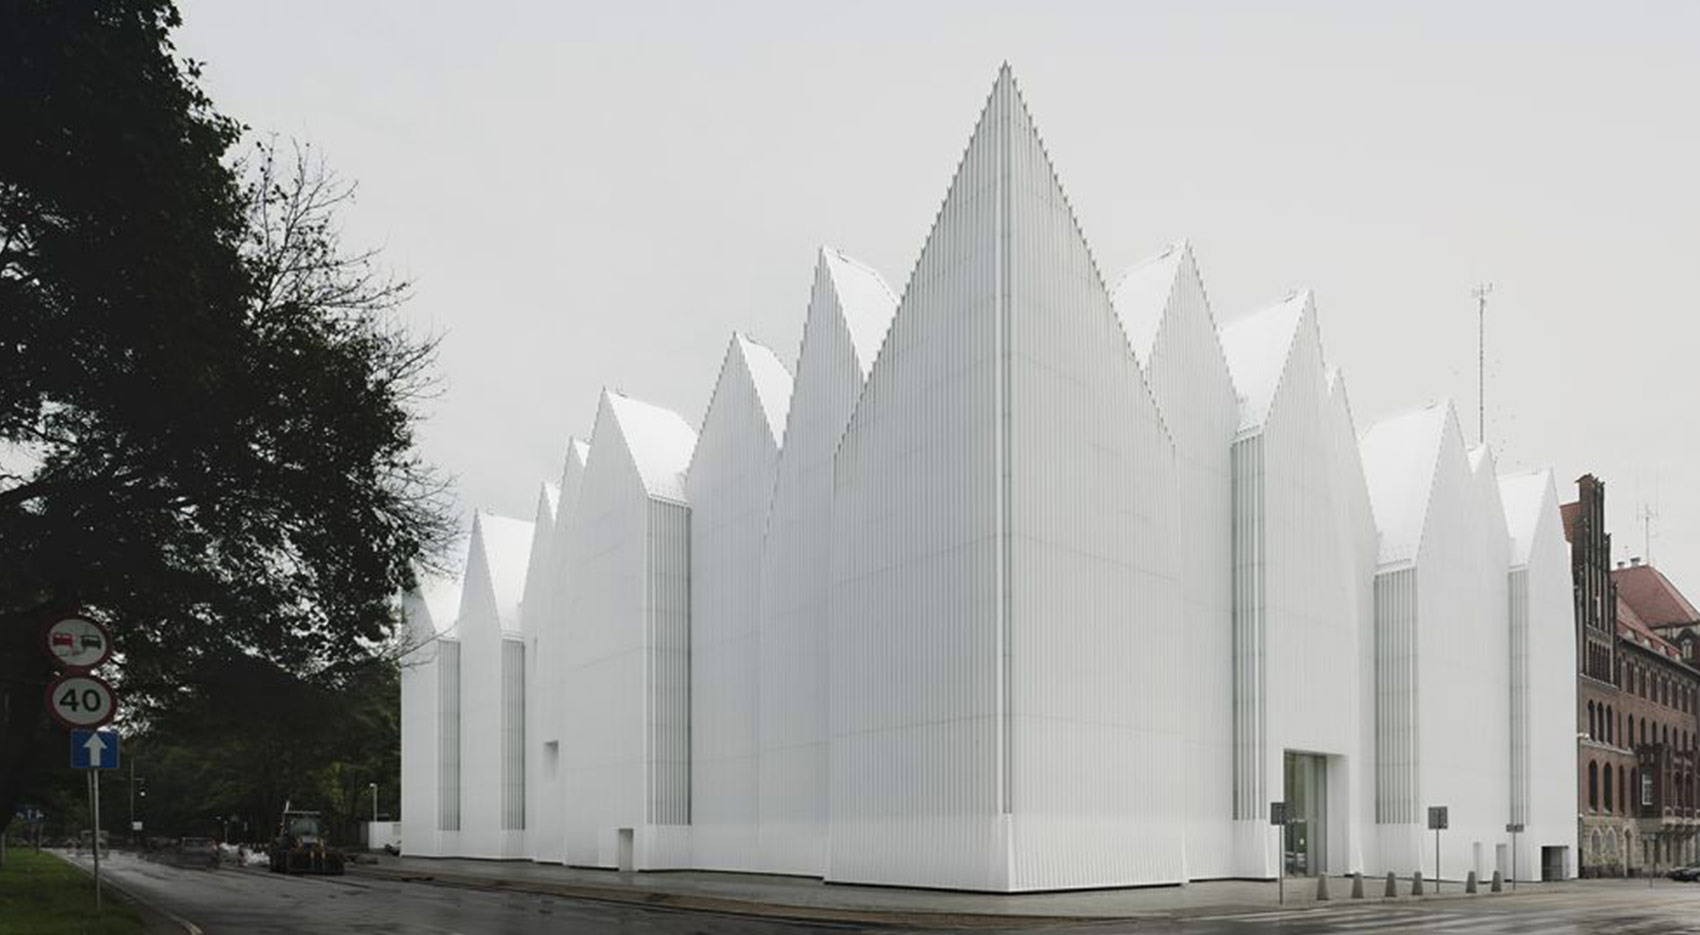 Barozzi Veiga wins the Mies van der Rohe Awards blog Codina Architectural